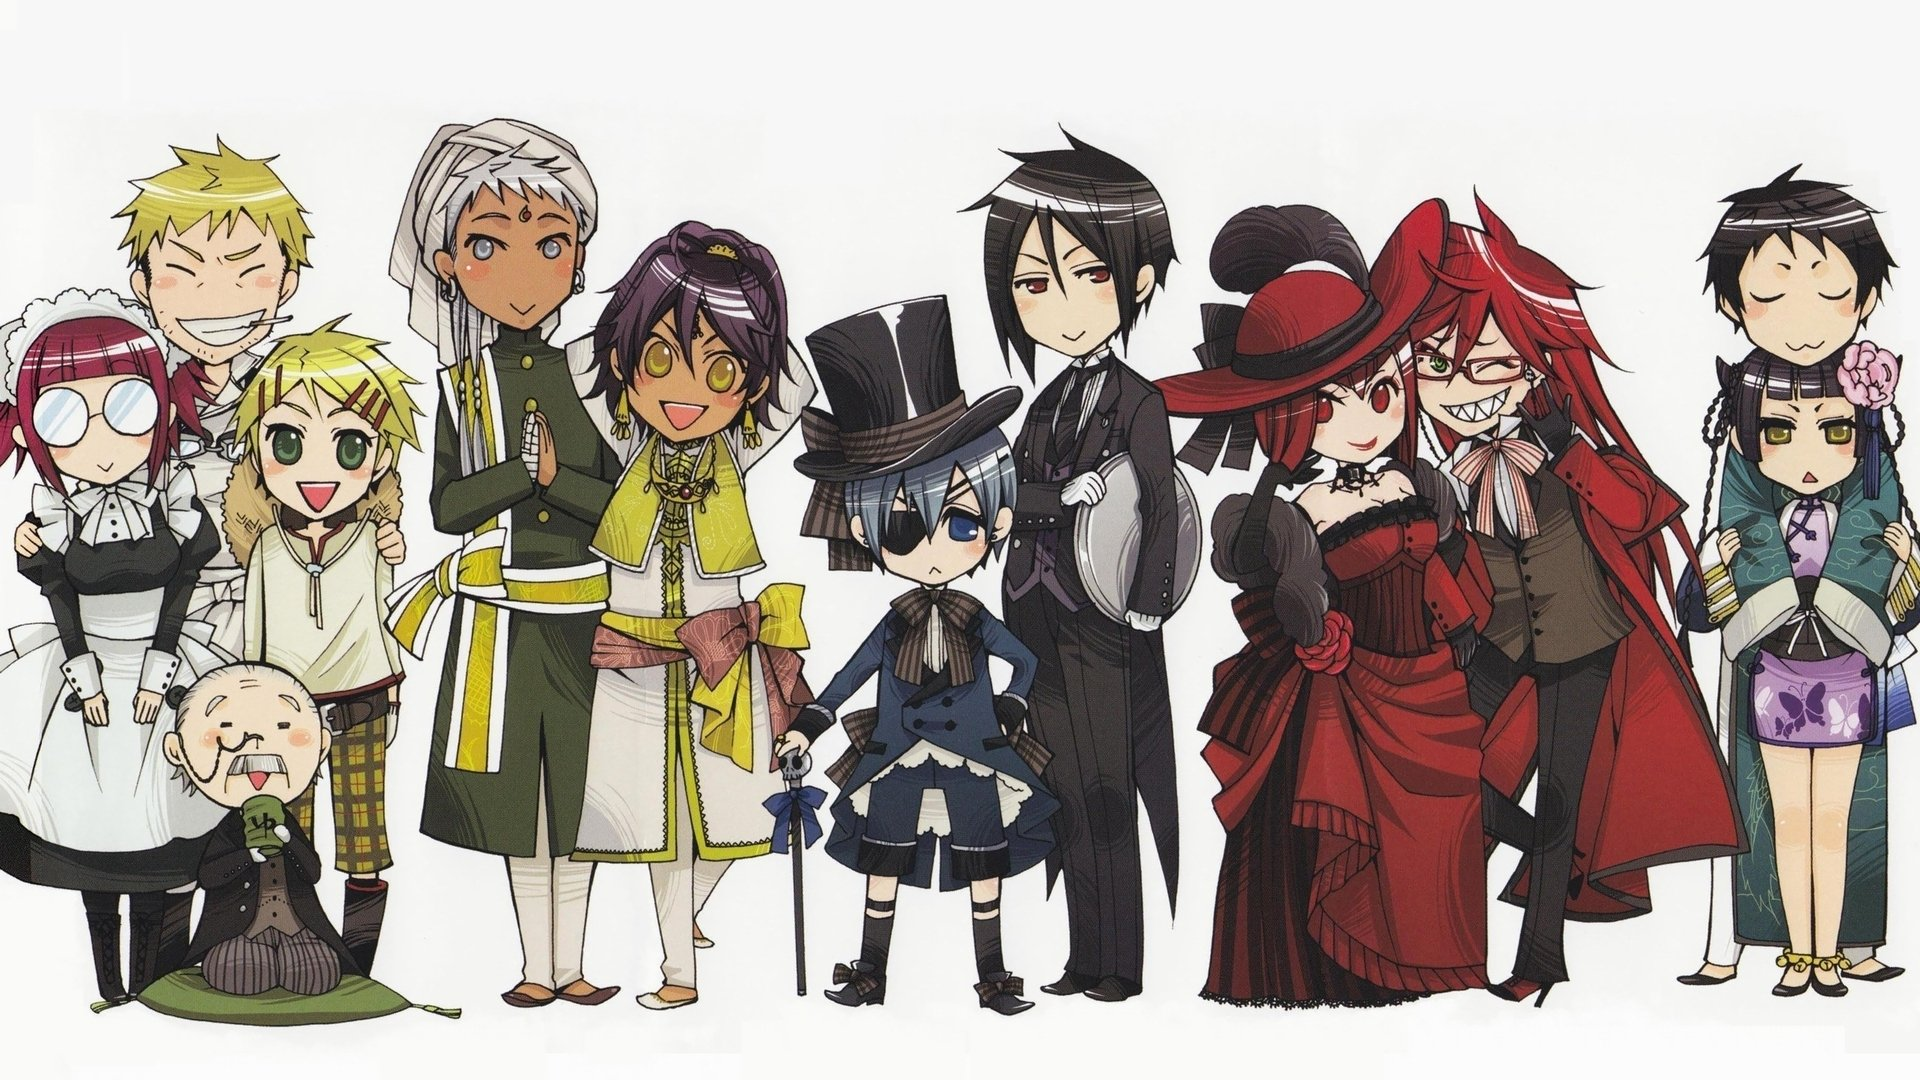 262 Black Butler Hd Wallpapers Background Images Wallpaper Abyss